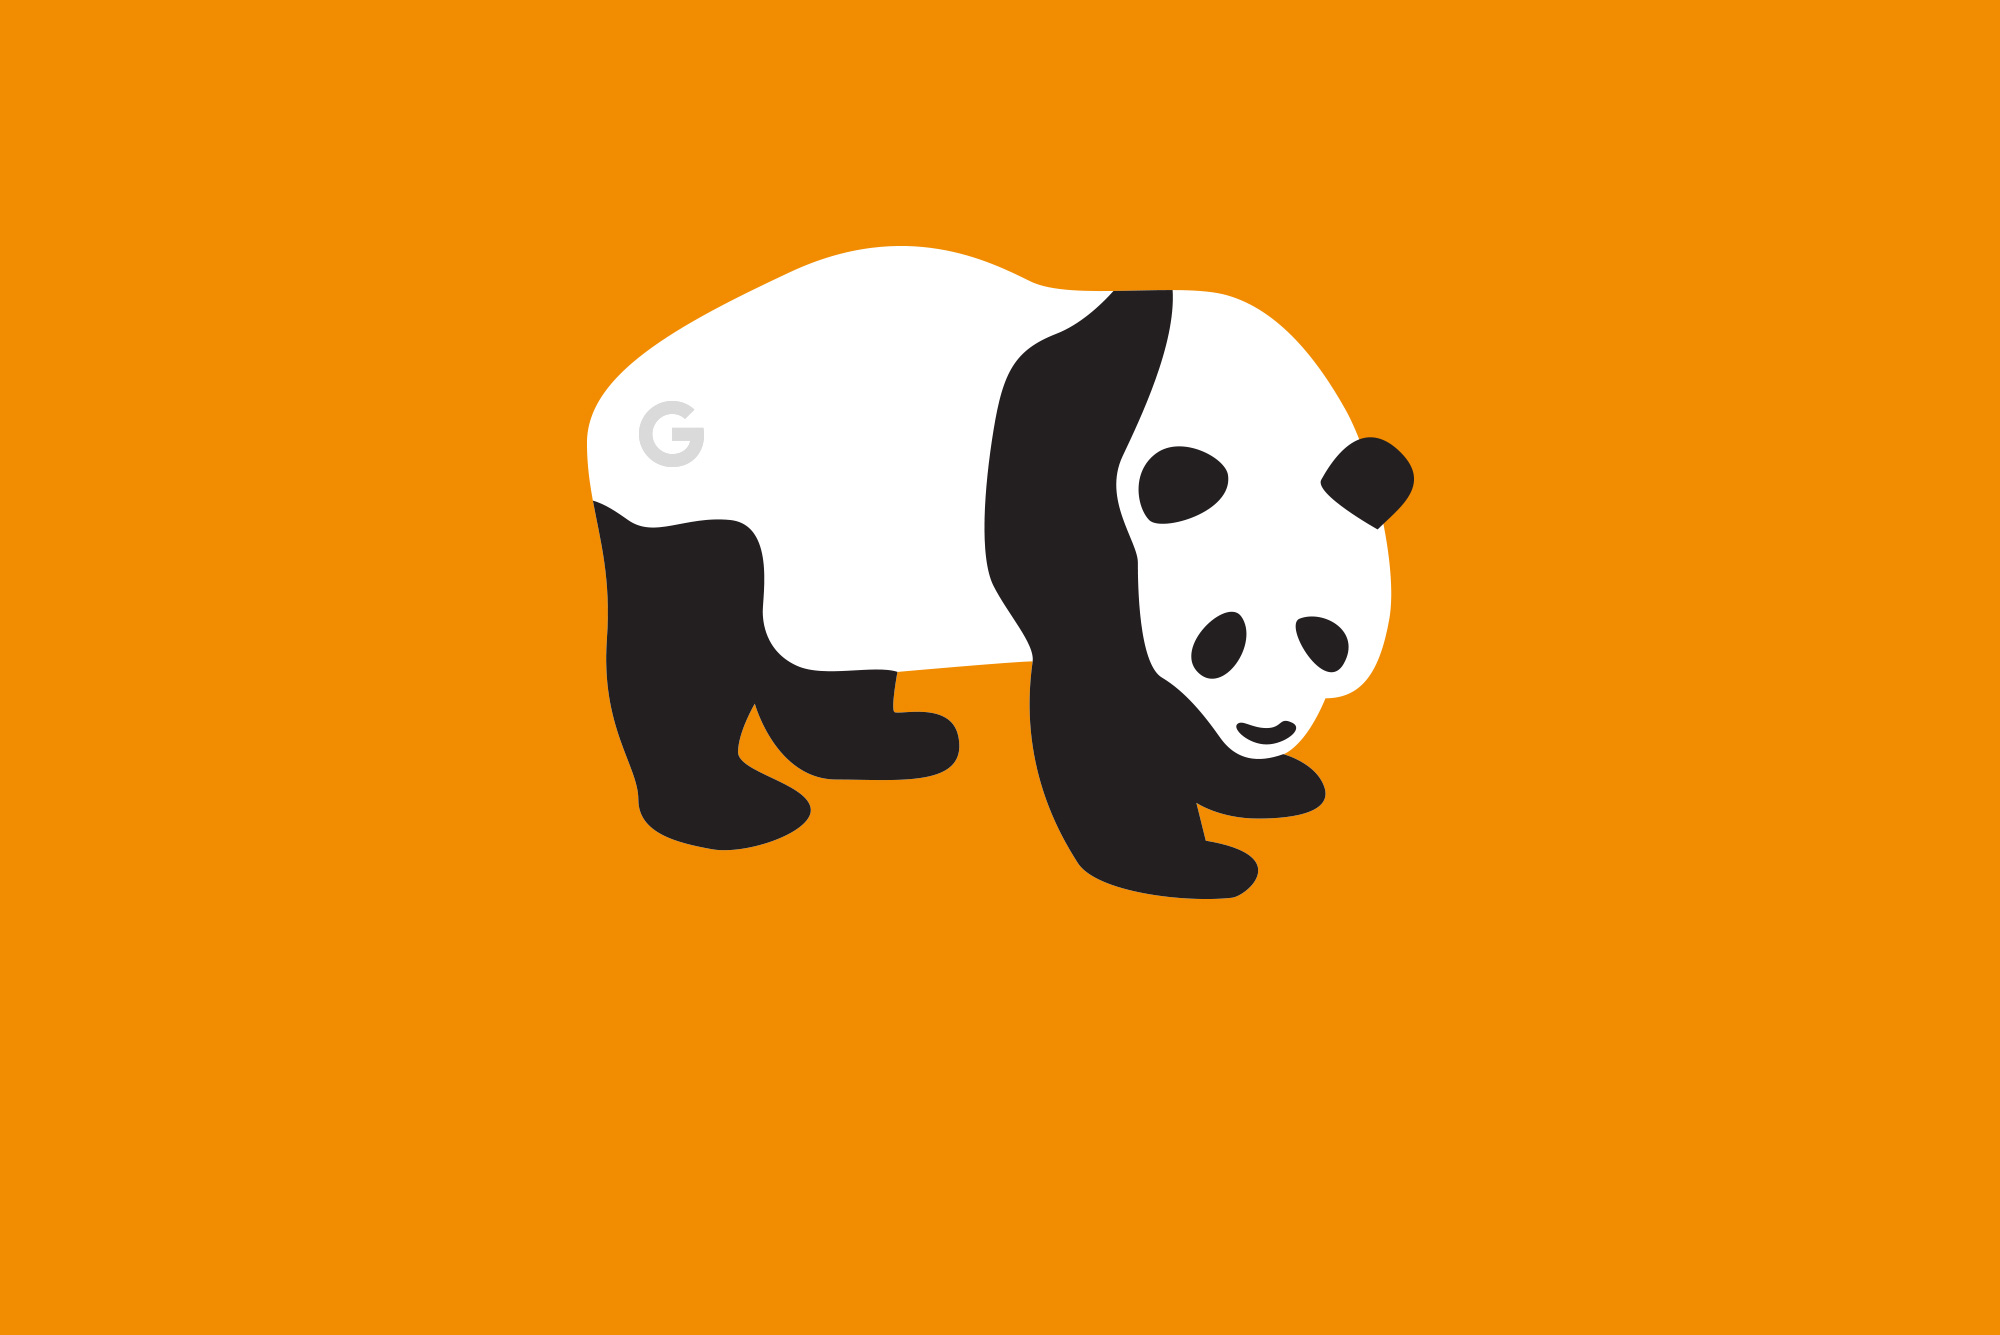 Google Panda on orange background - Google Algorithm Update